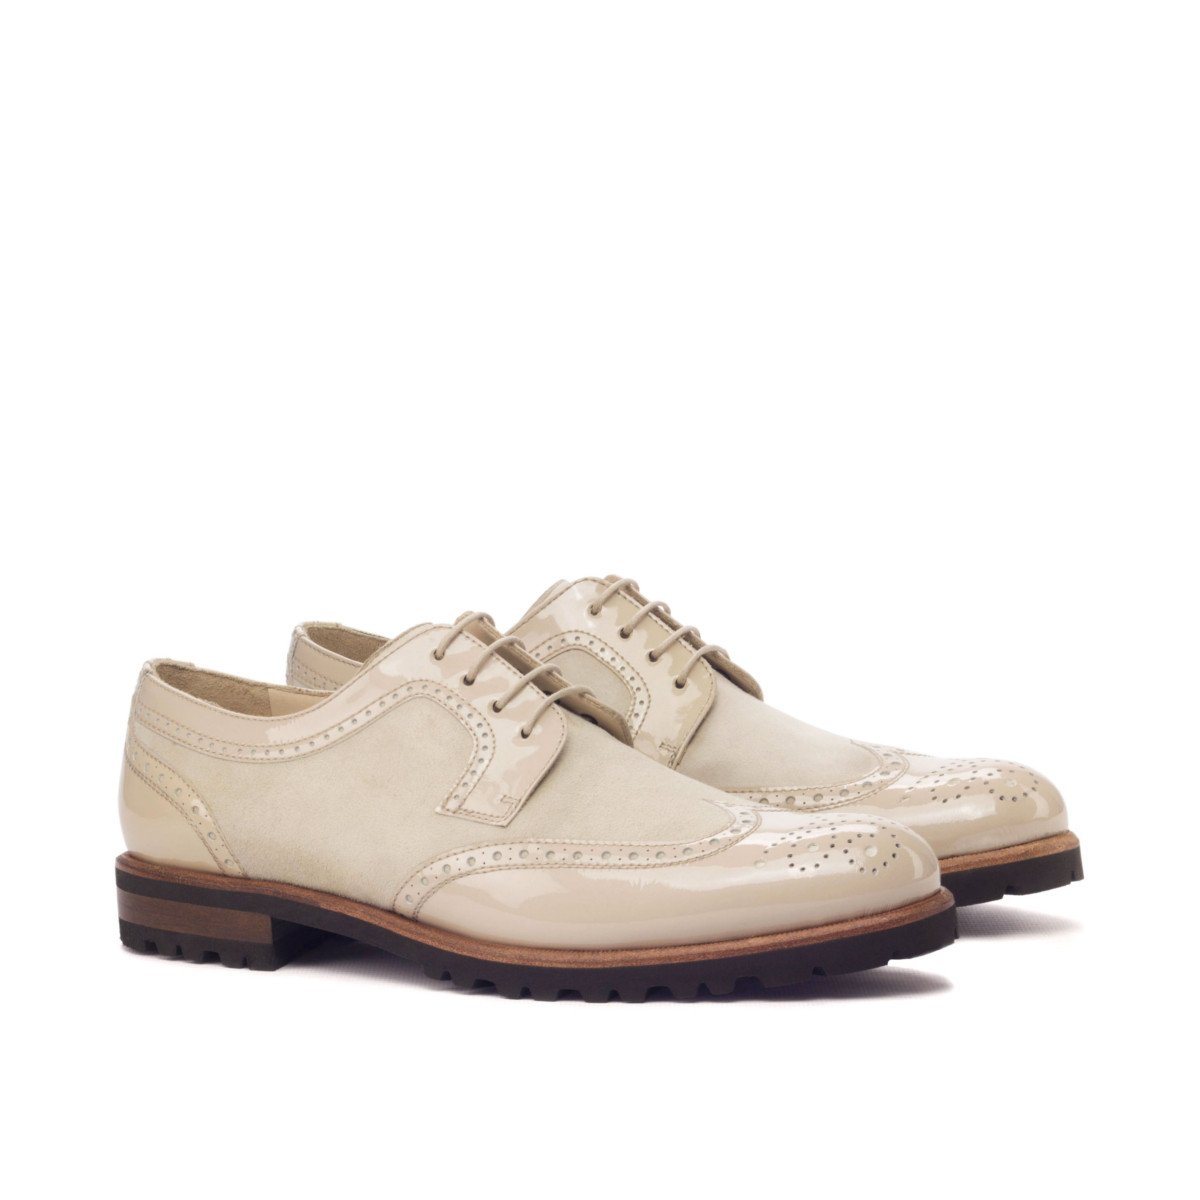 Patent and suede women's derbys